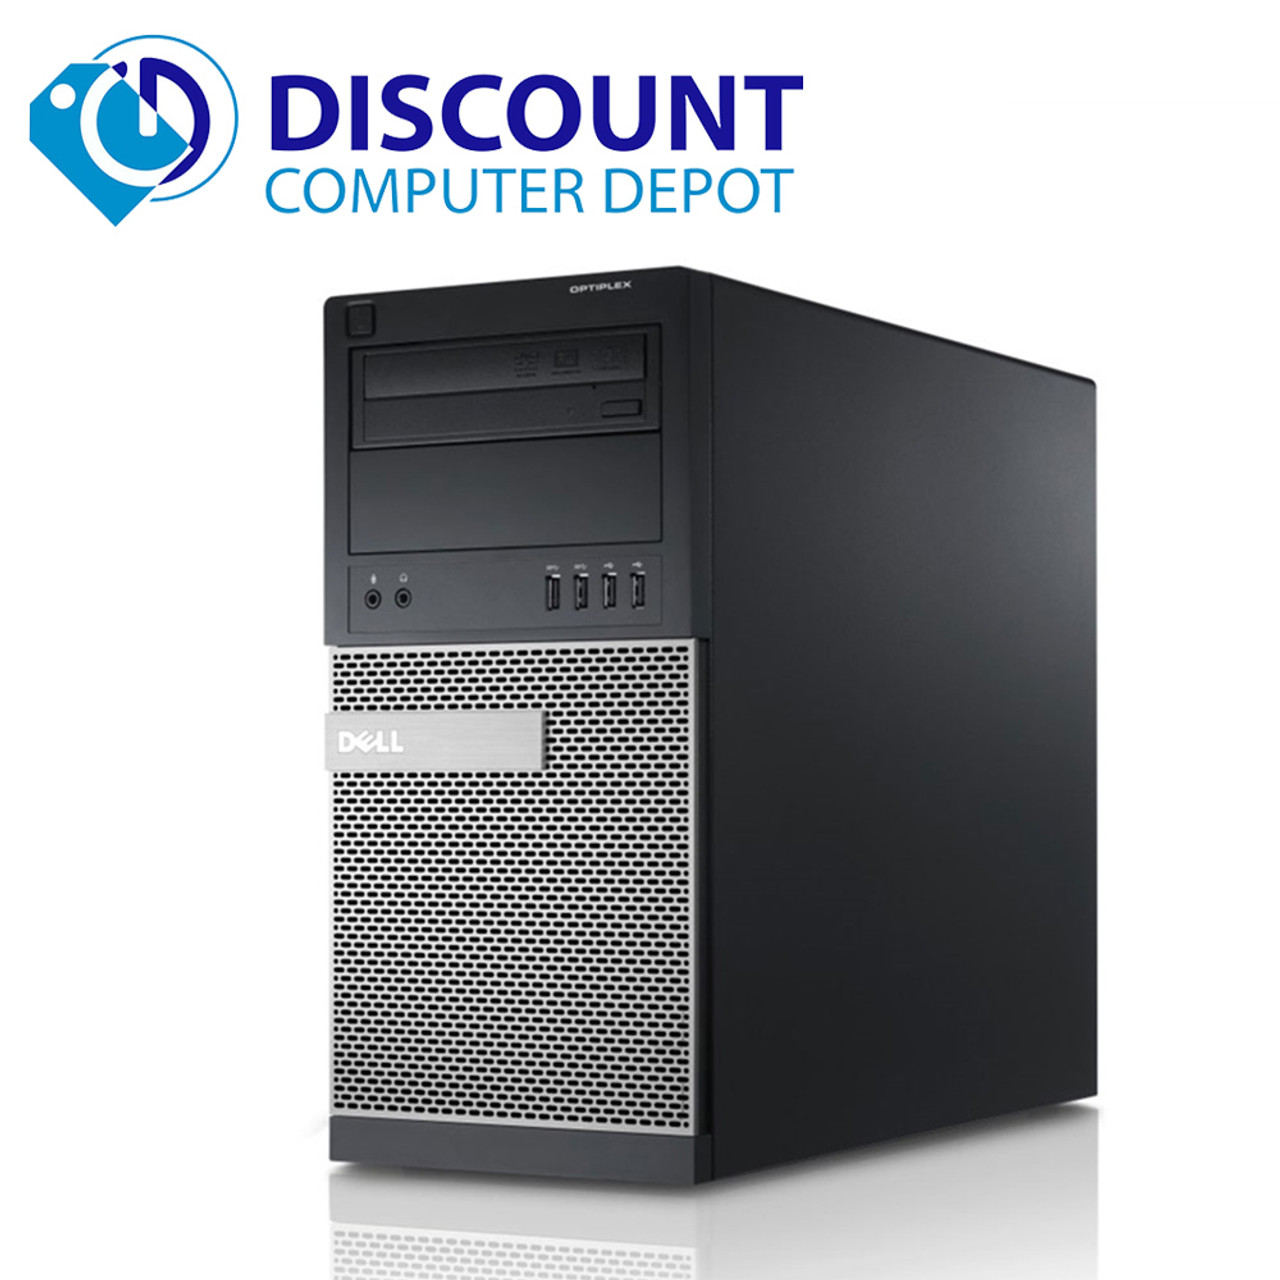 Clearance! Fast Dell Optiplex Windows 10 Pro Core i7 Computer Tower 2 8GHz  8GB 320GB and WIFI